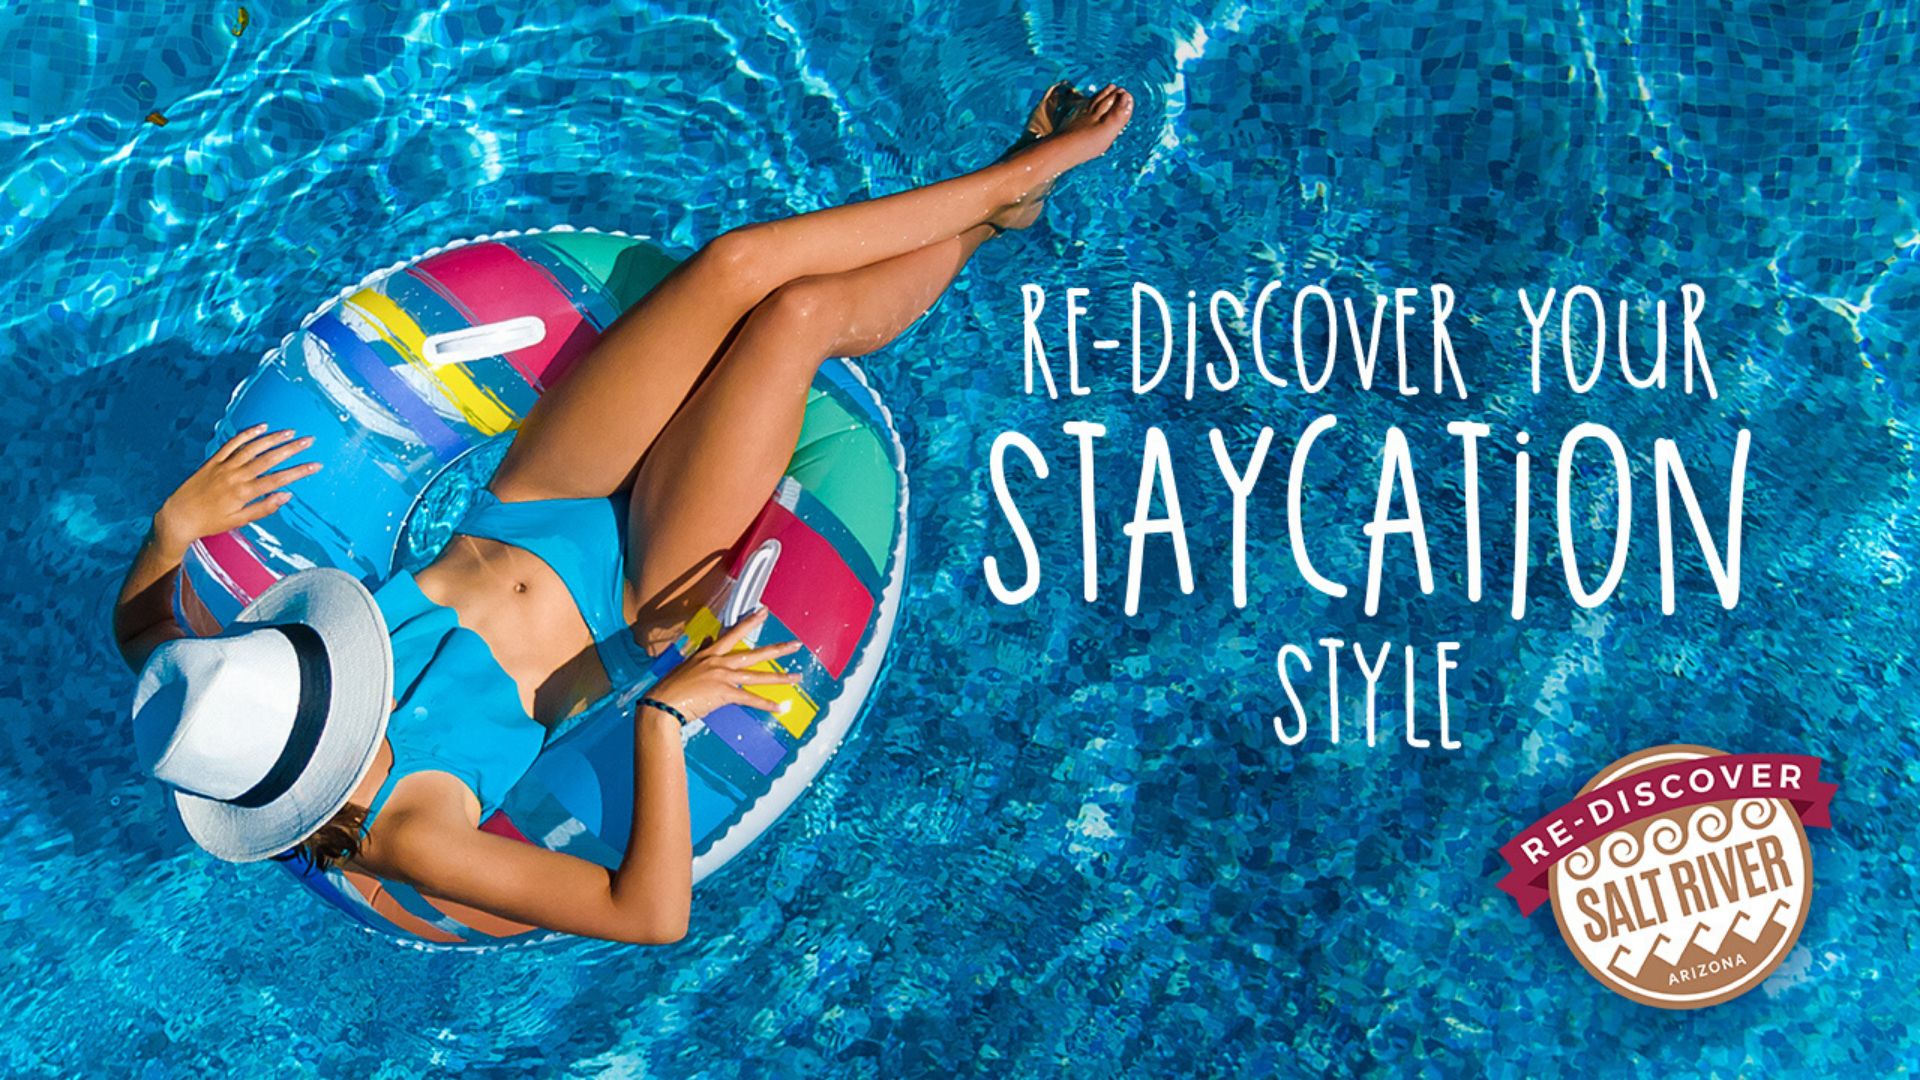 Re-Discover Your Staycation Style!